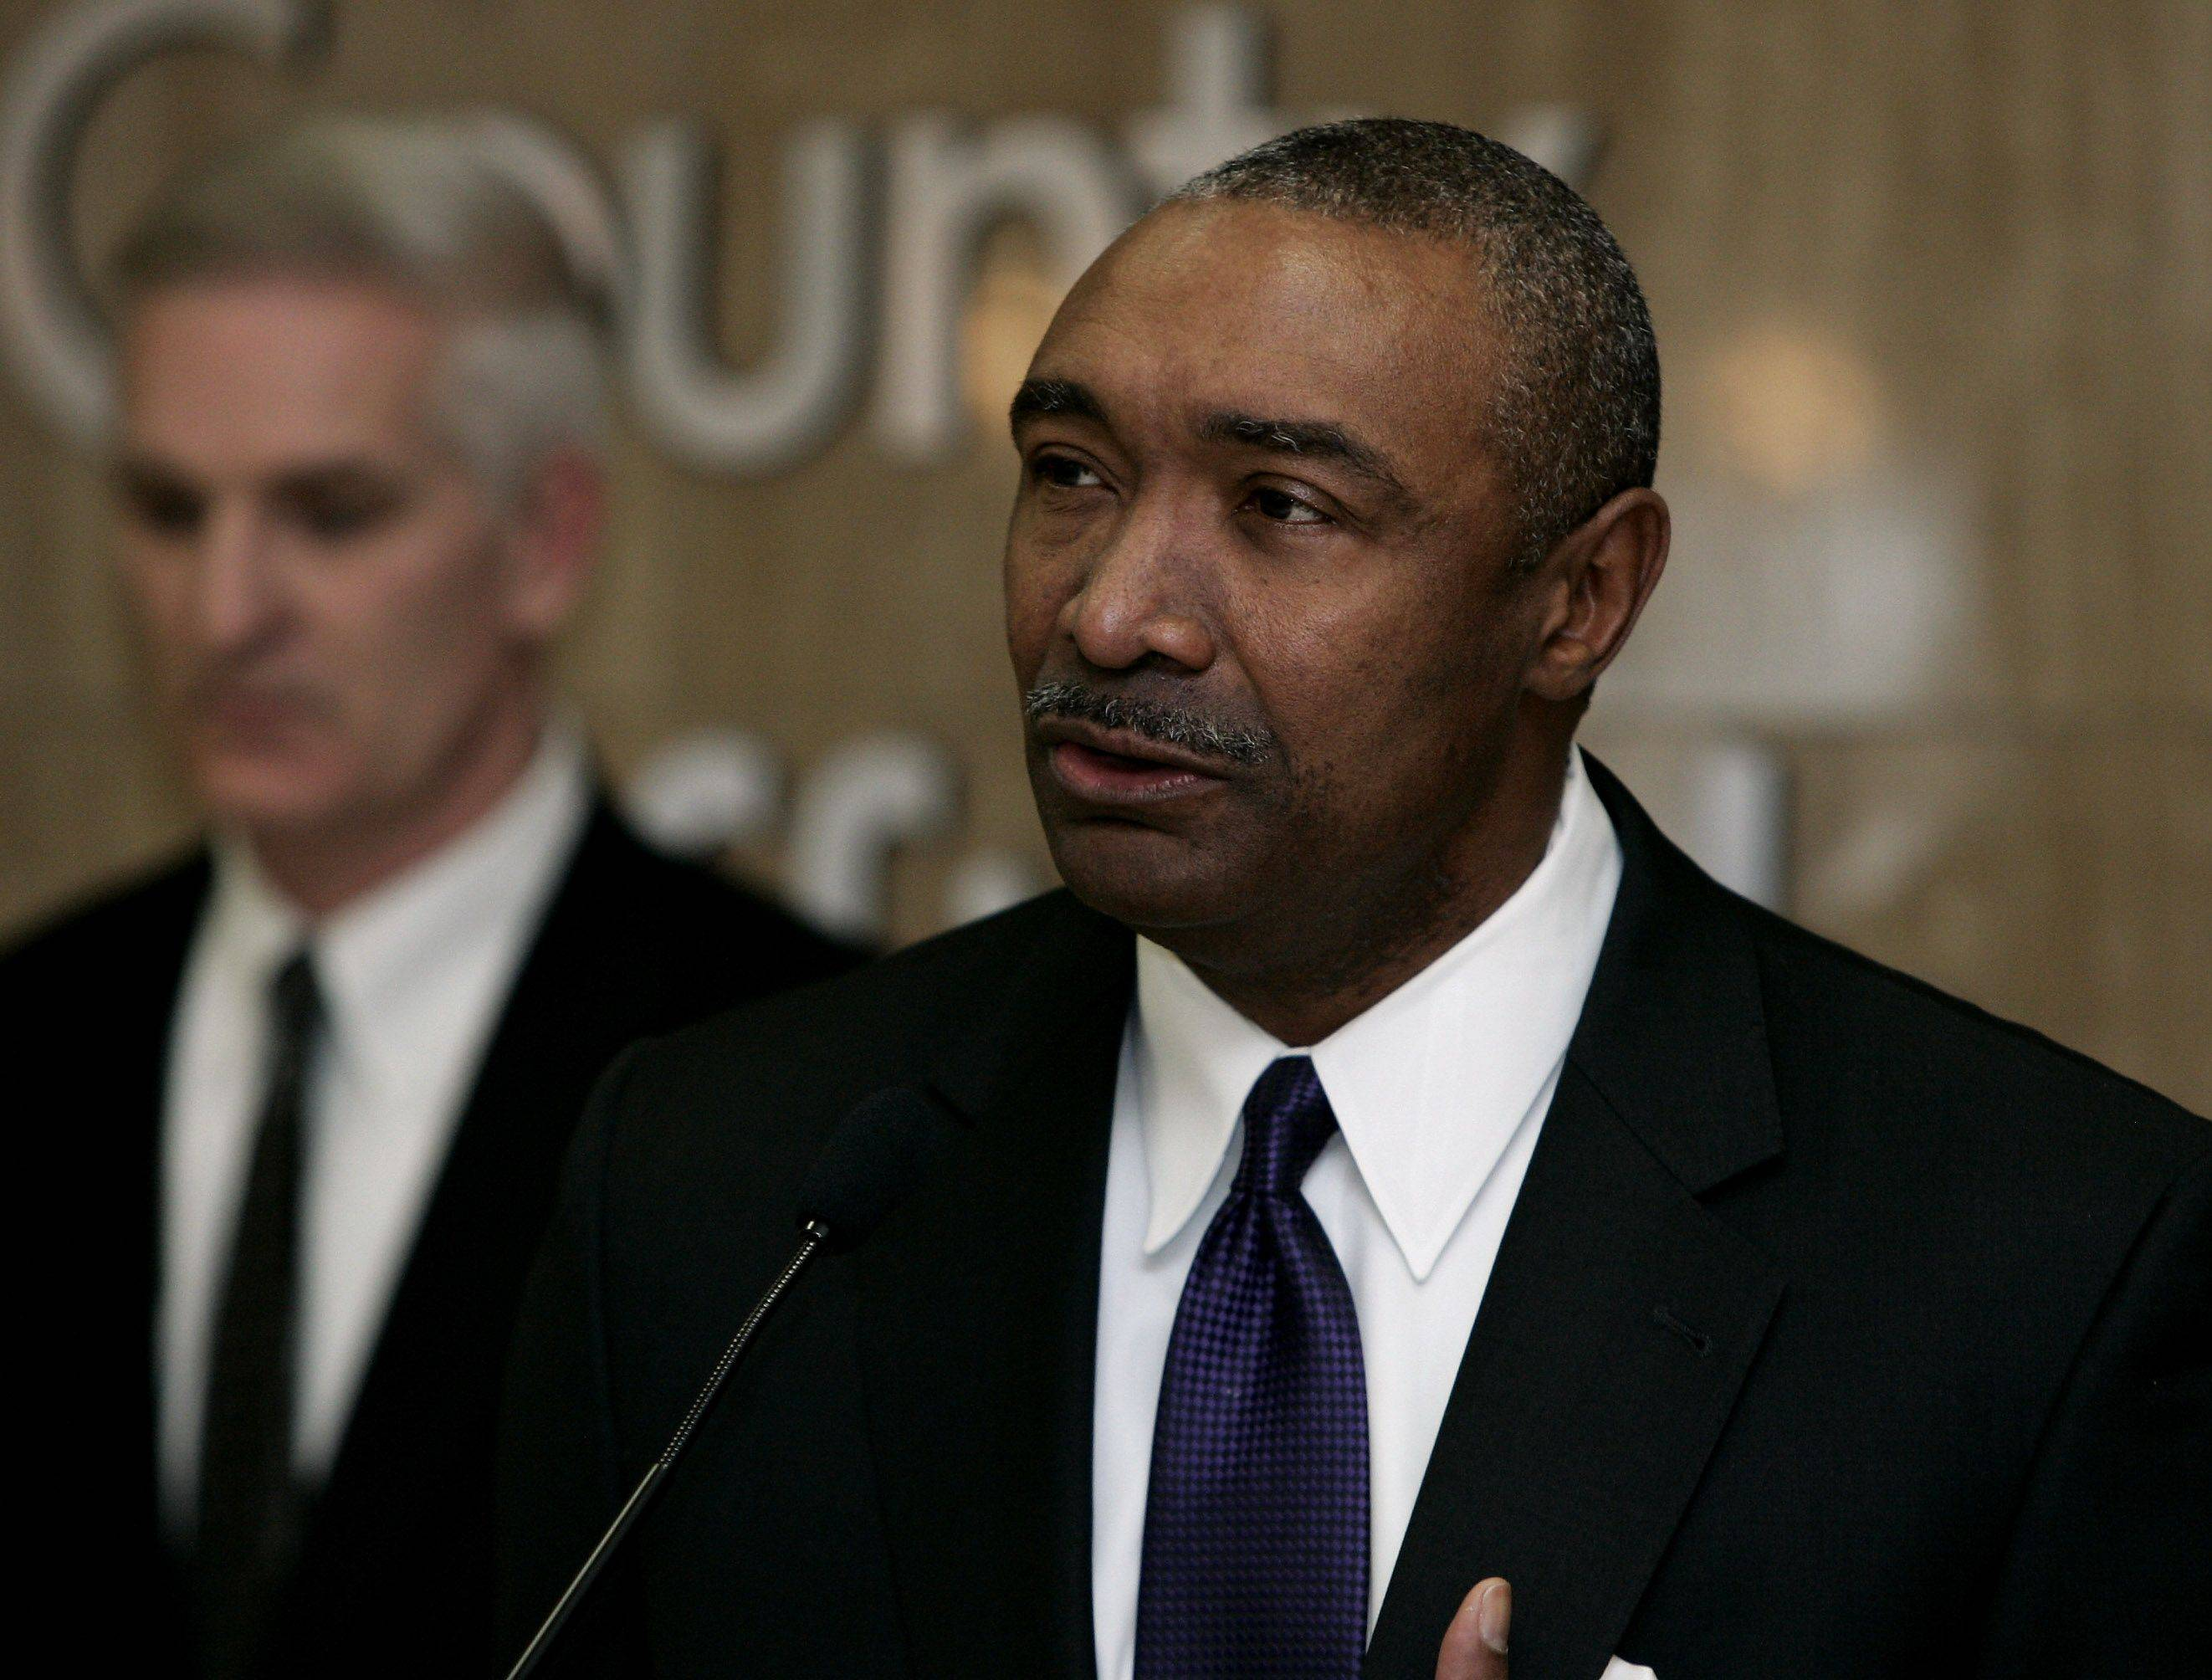 Former Waukegan police chief Artis Yancey was named Lake County Coroner Monday. He replaces former coroner Richard Keller who resigned in February.